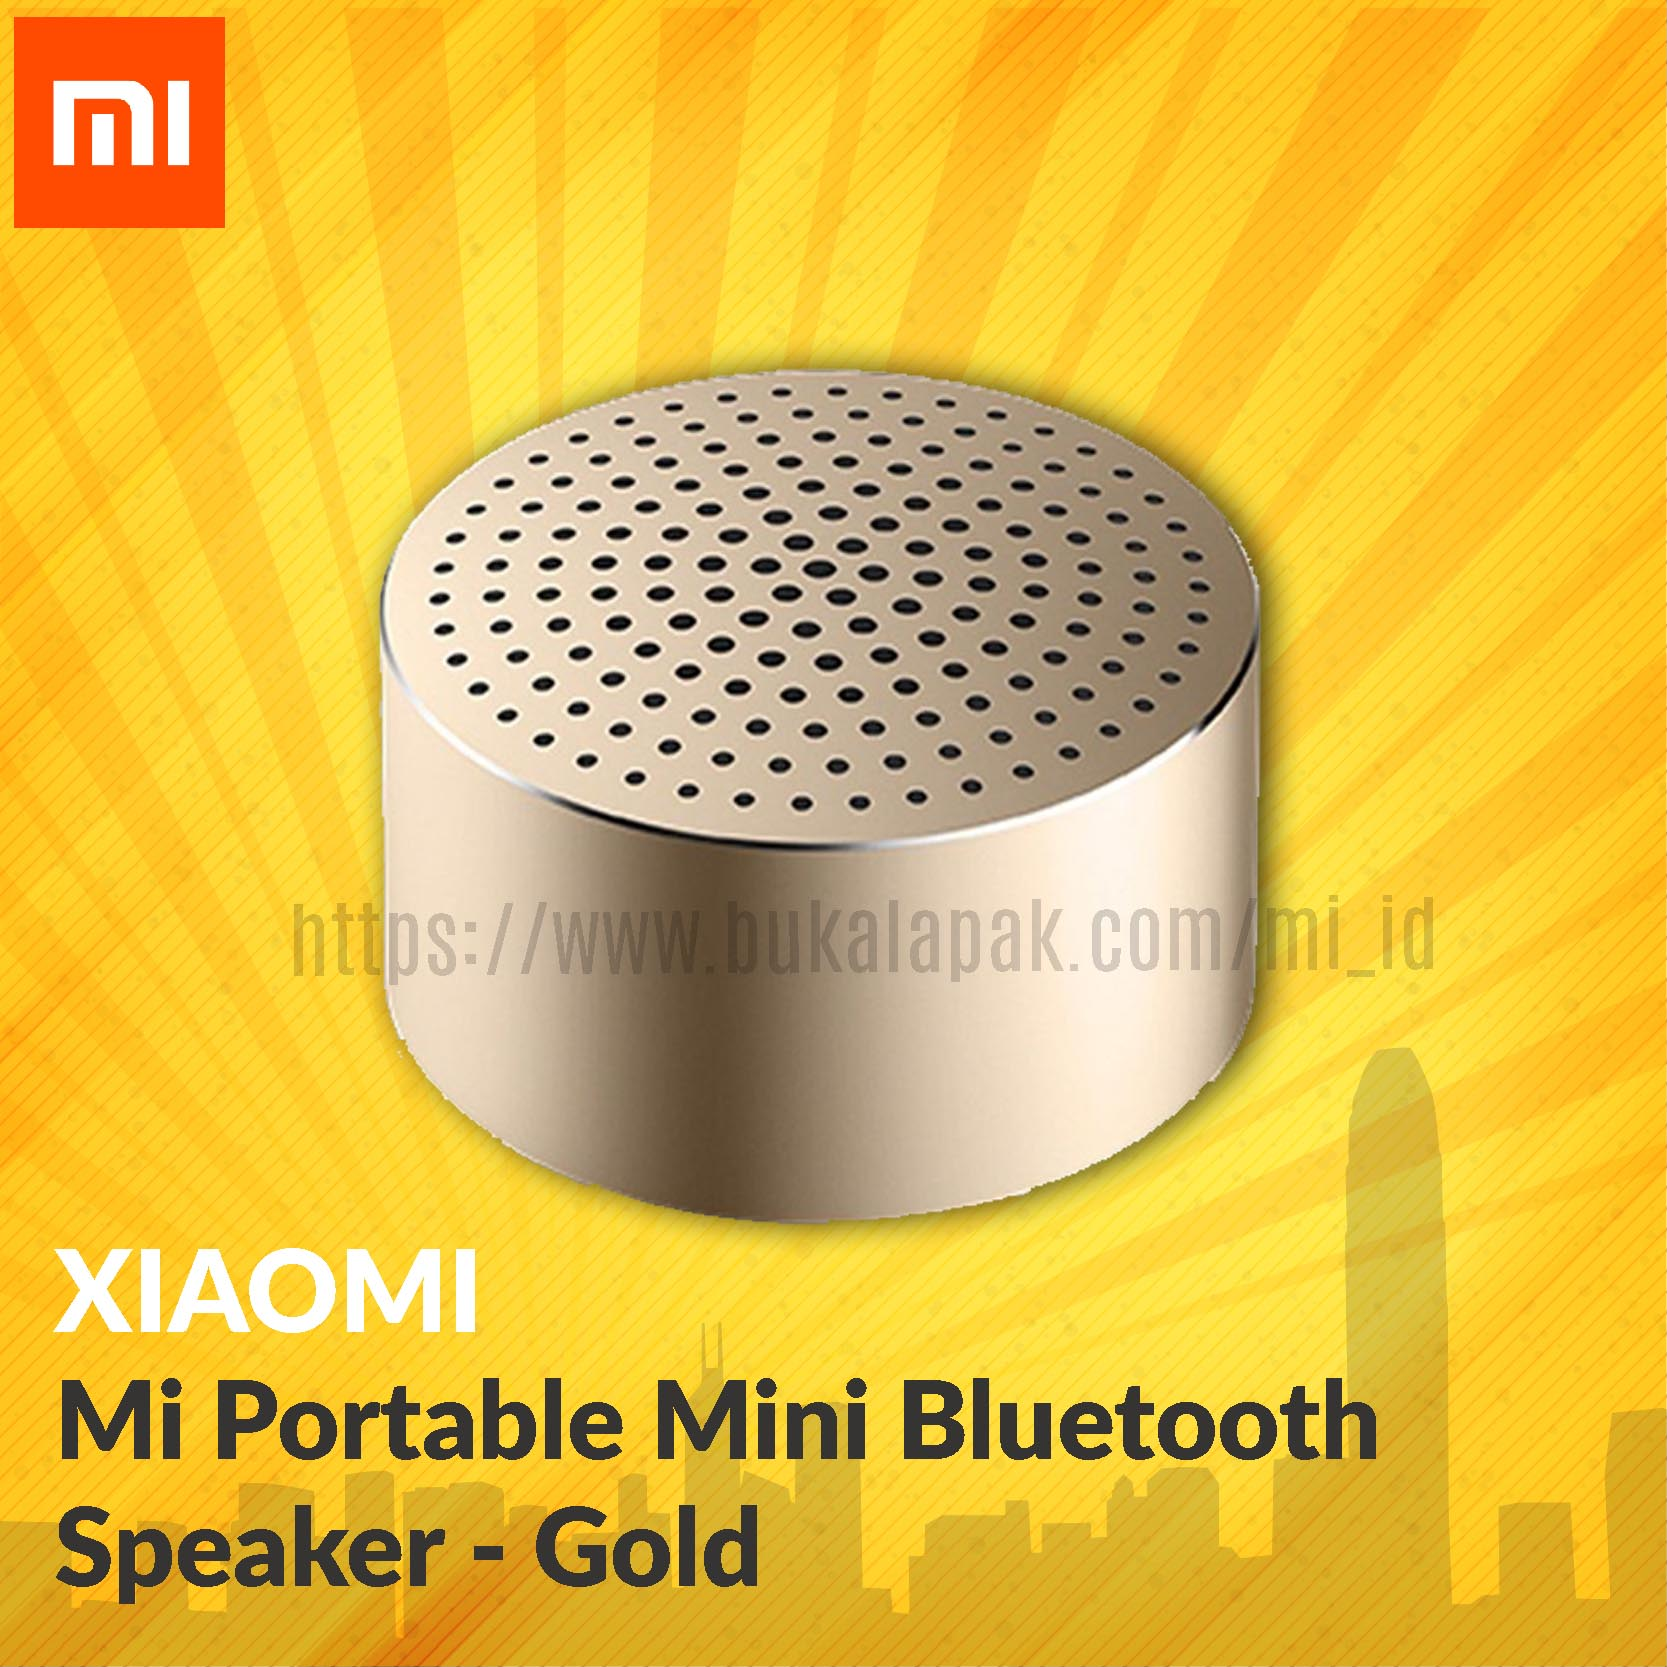 Xiaomi Mi Portable Mini Bluetooth Speaker - Grey/gold/silver